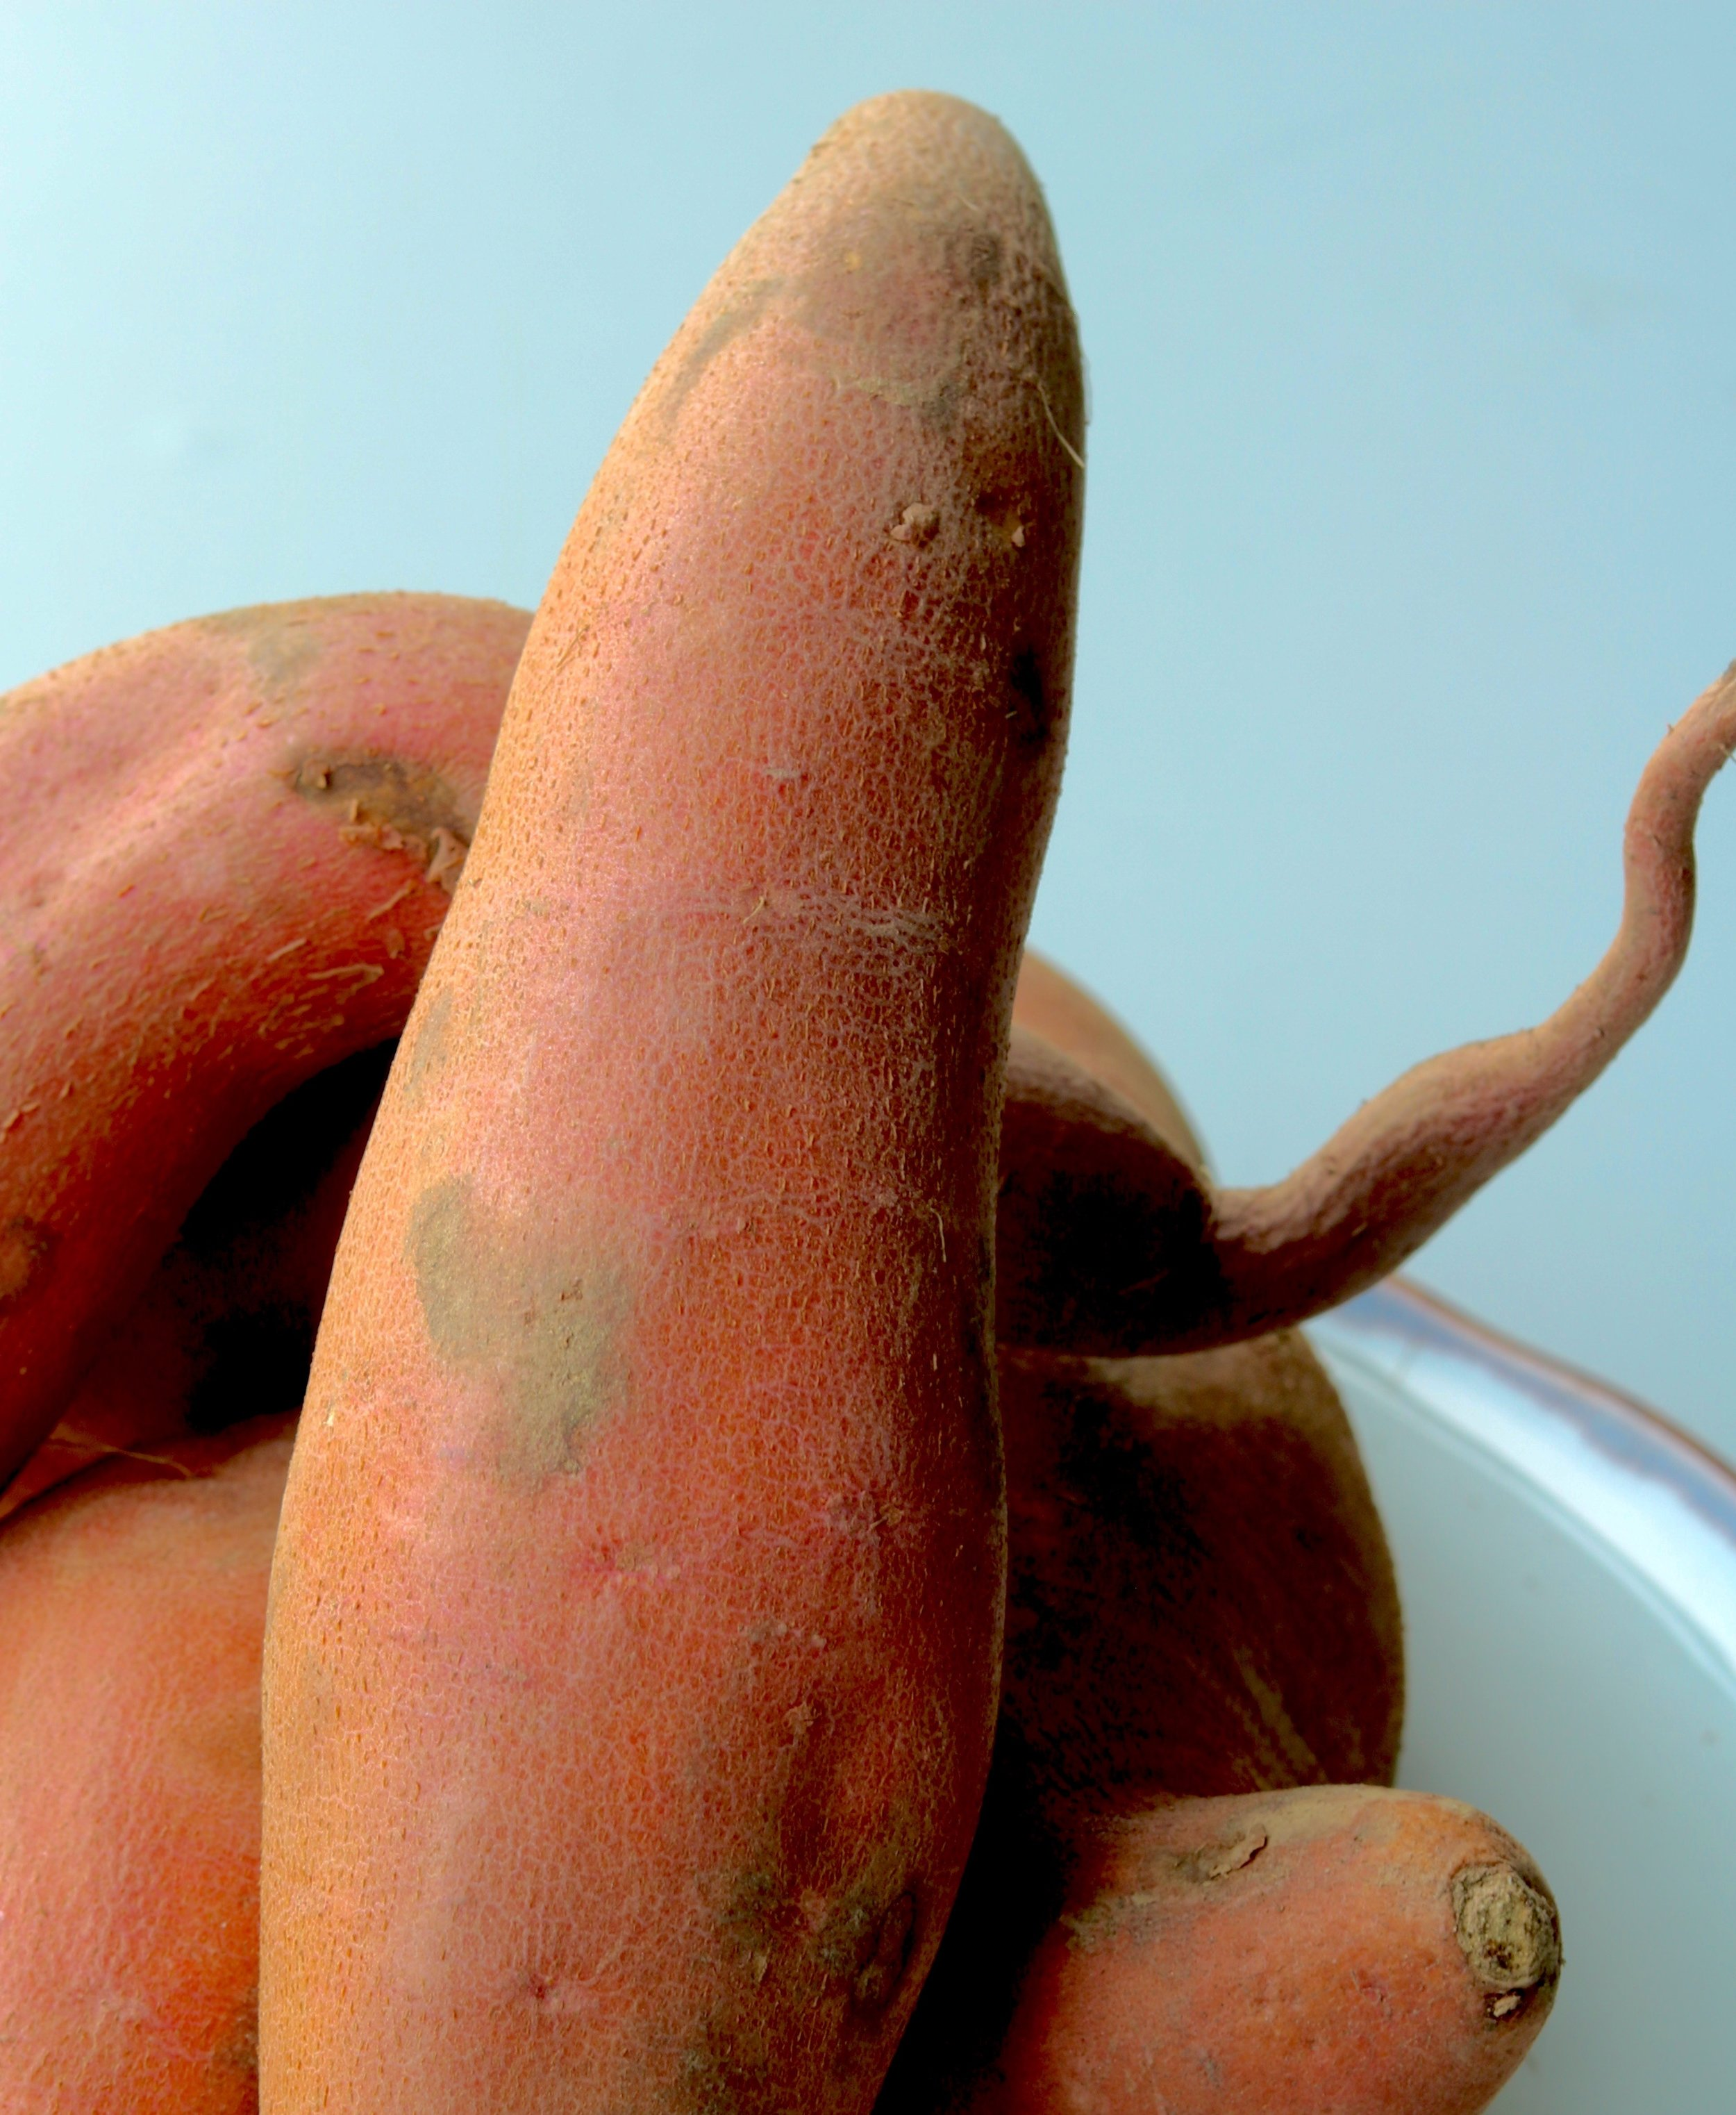 Yams, growing in all directions